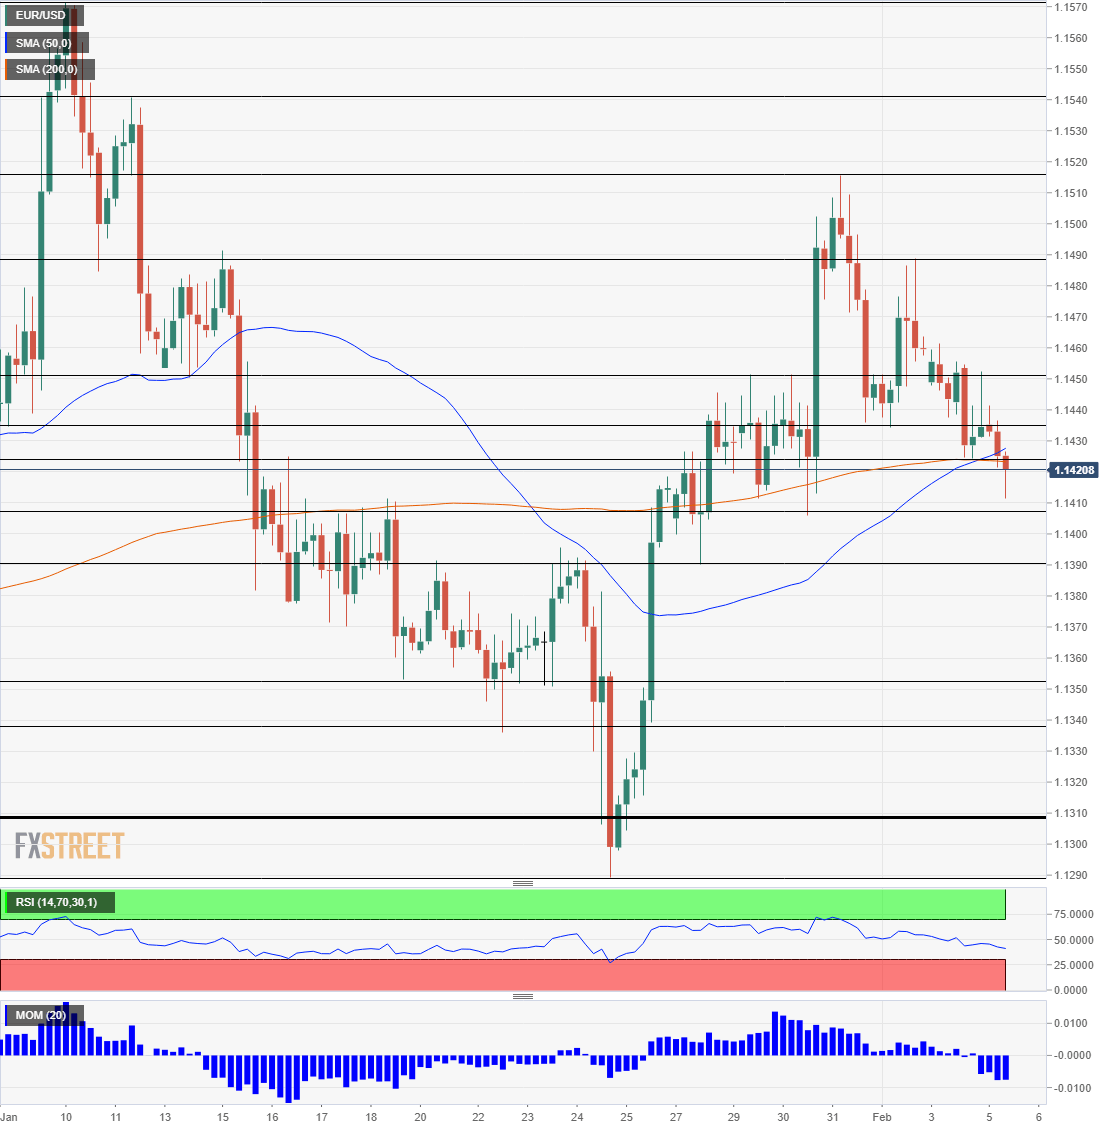 EUR USD Technical Analysis February 5 2019